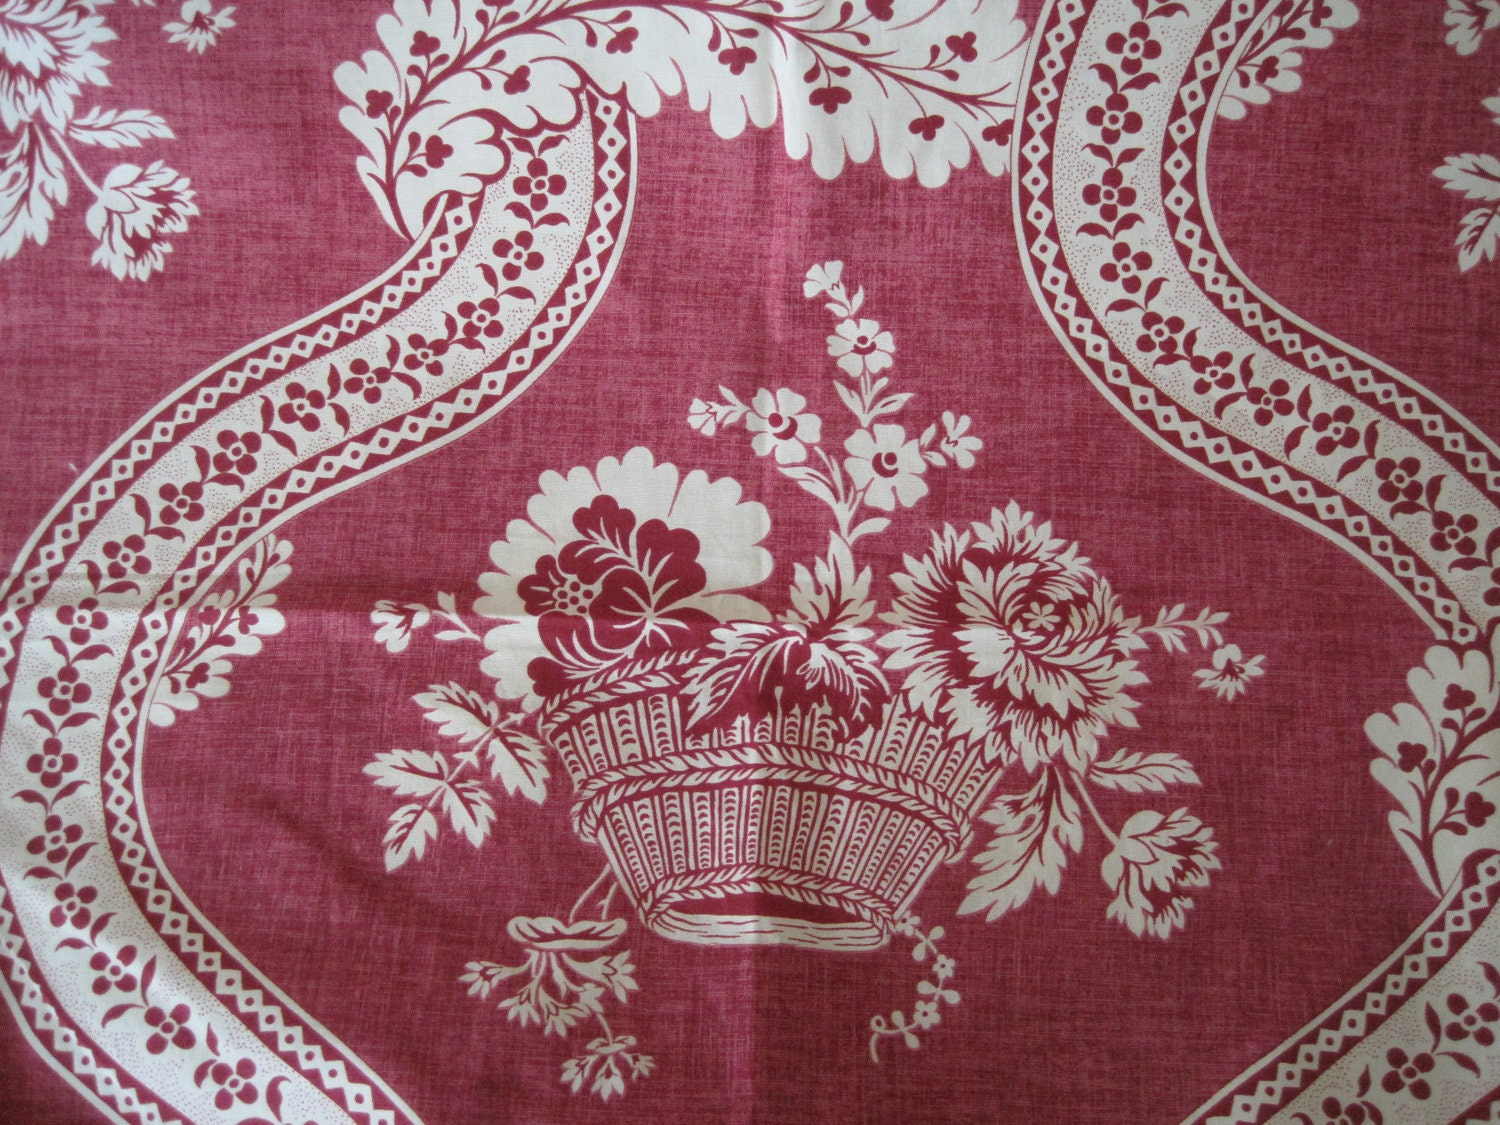 Fabric home decor pierre frey french toile raspberry remnant for Pierre frey fabric